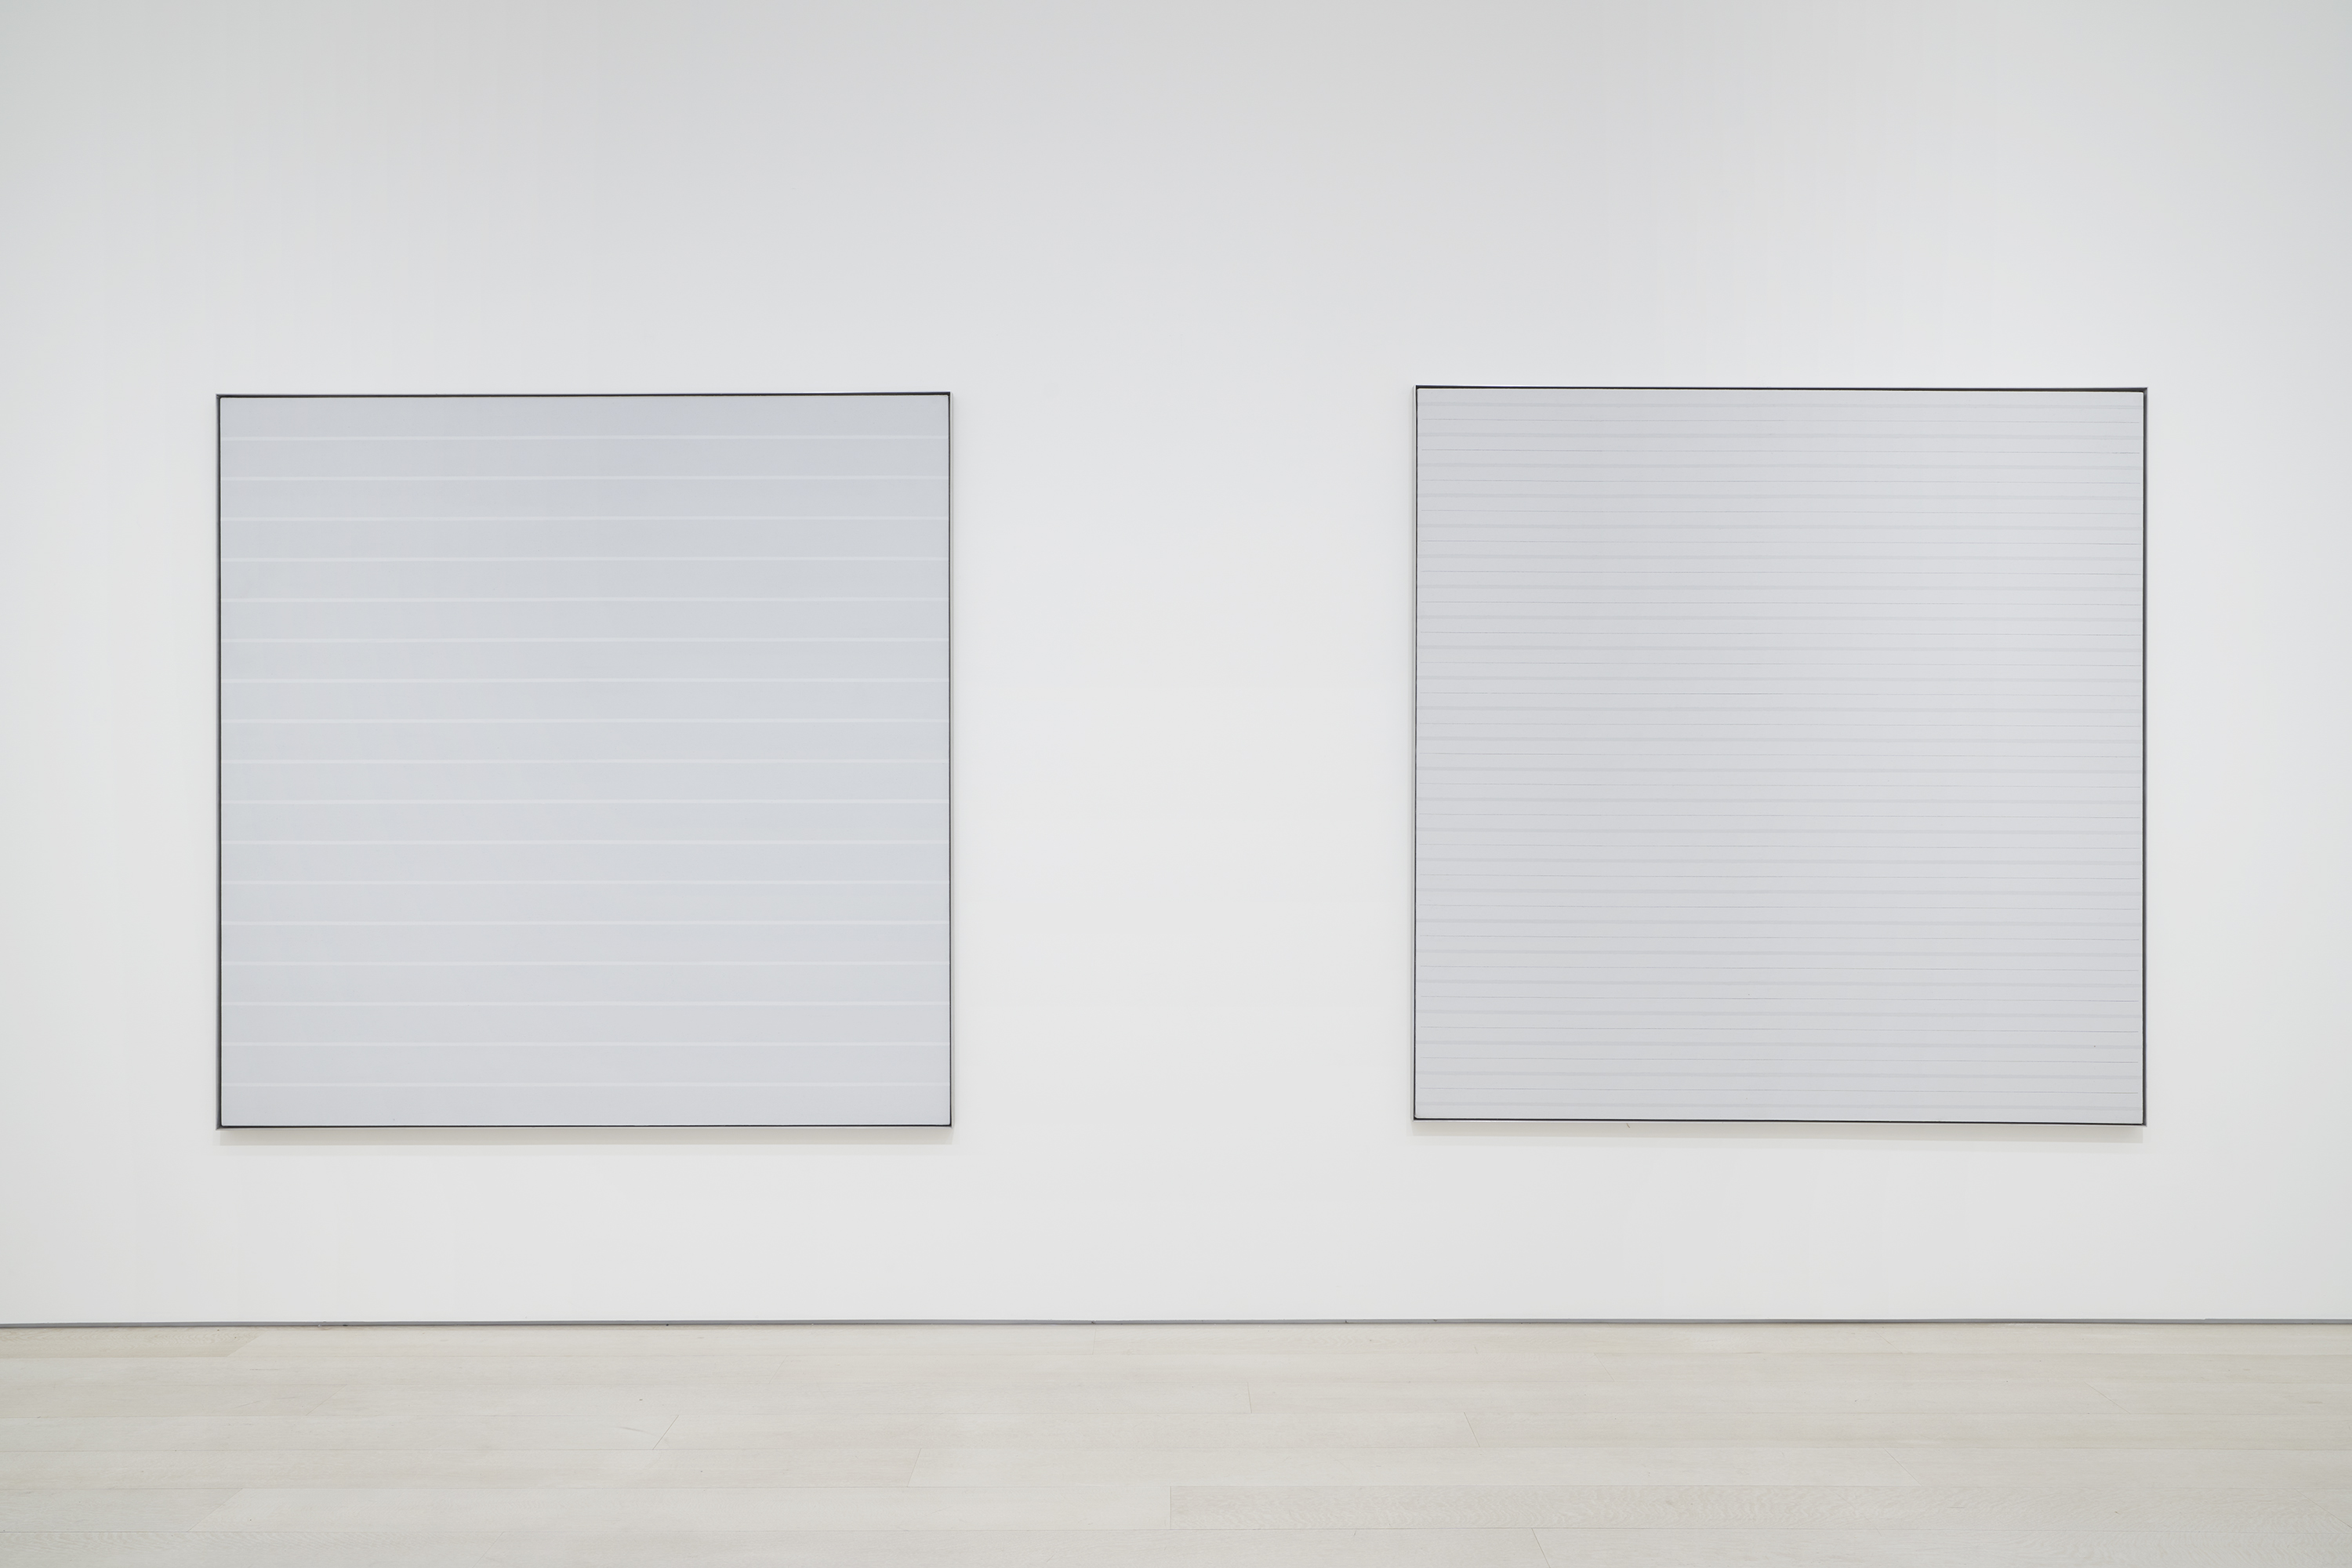 Installation view: Agnes Martin:The Distillation of Color, Pace Gallery, New York, May 5 – June 26, 2021. Photography courtesy of Pace Gallery